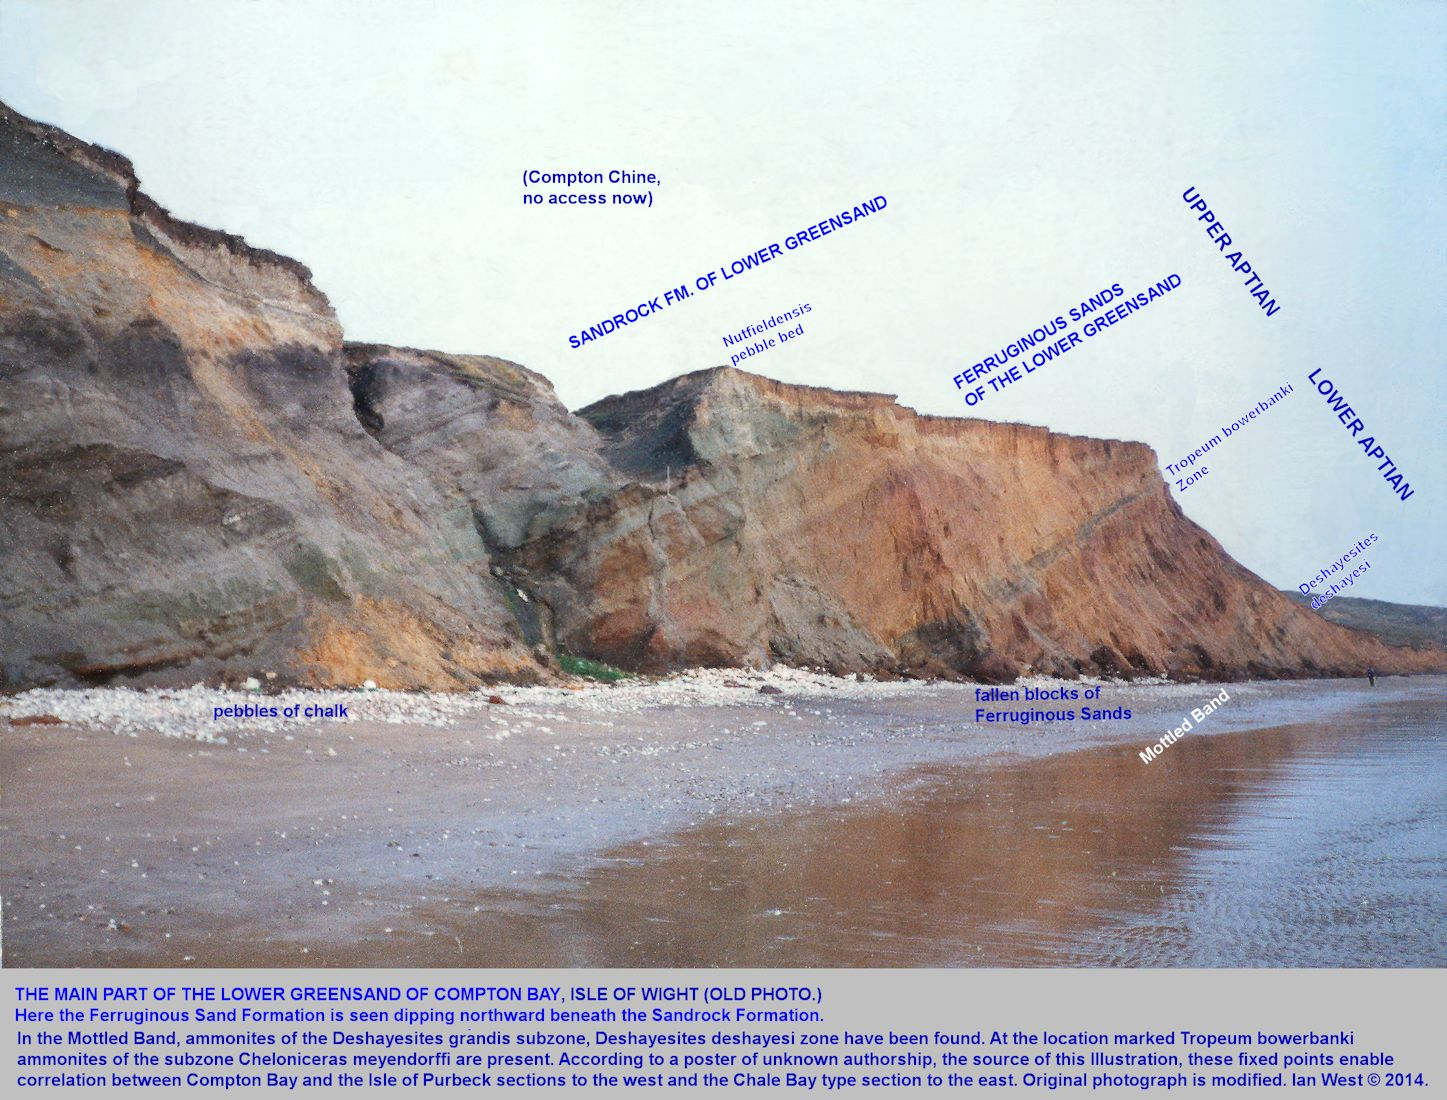 Lower Greensand at Compton Bay with some zonal positions in the Ferruginous Sands shown, Isle of Wight